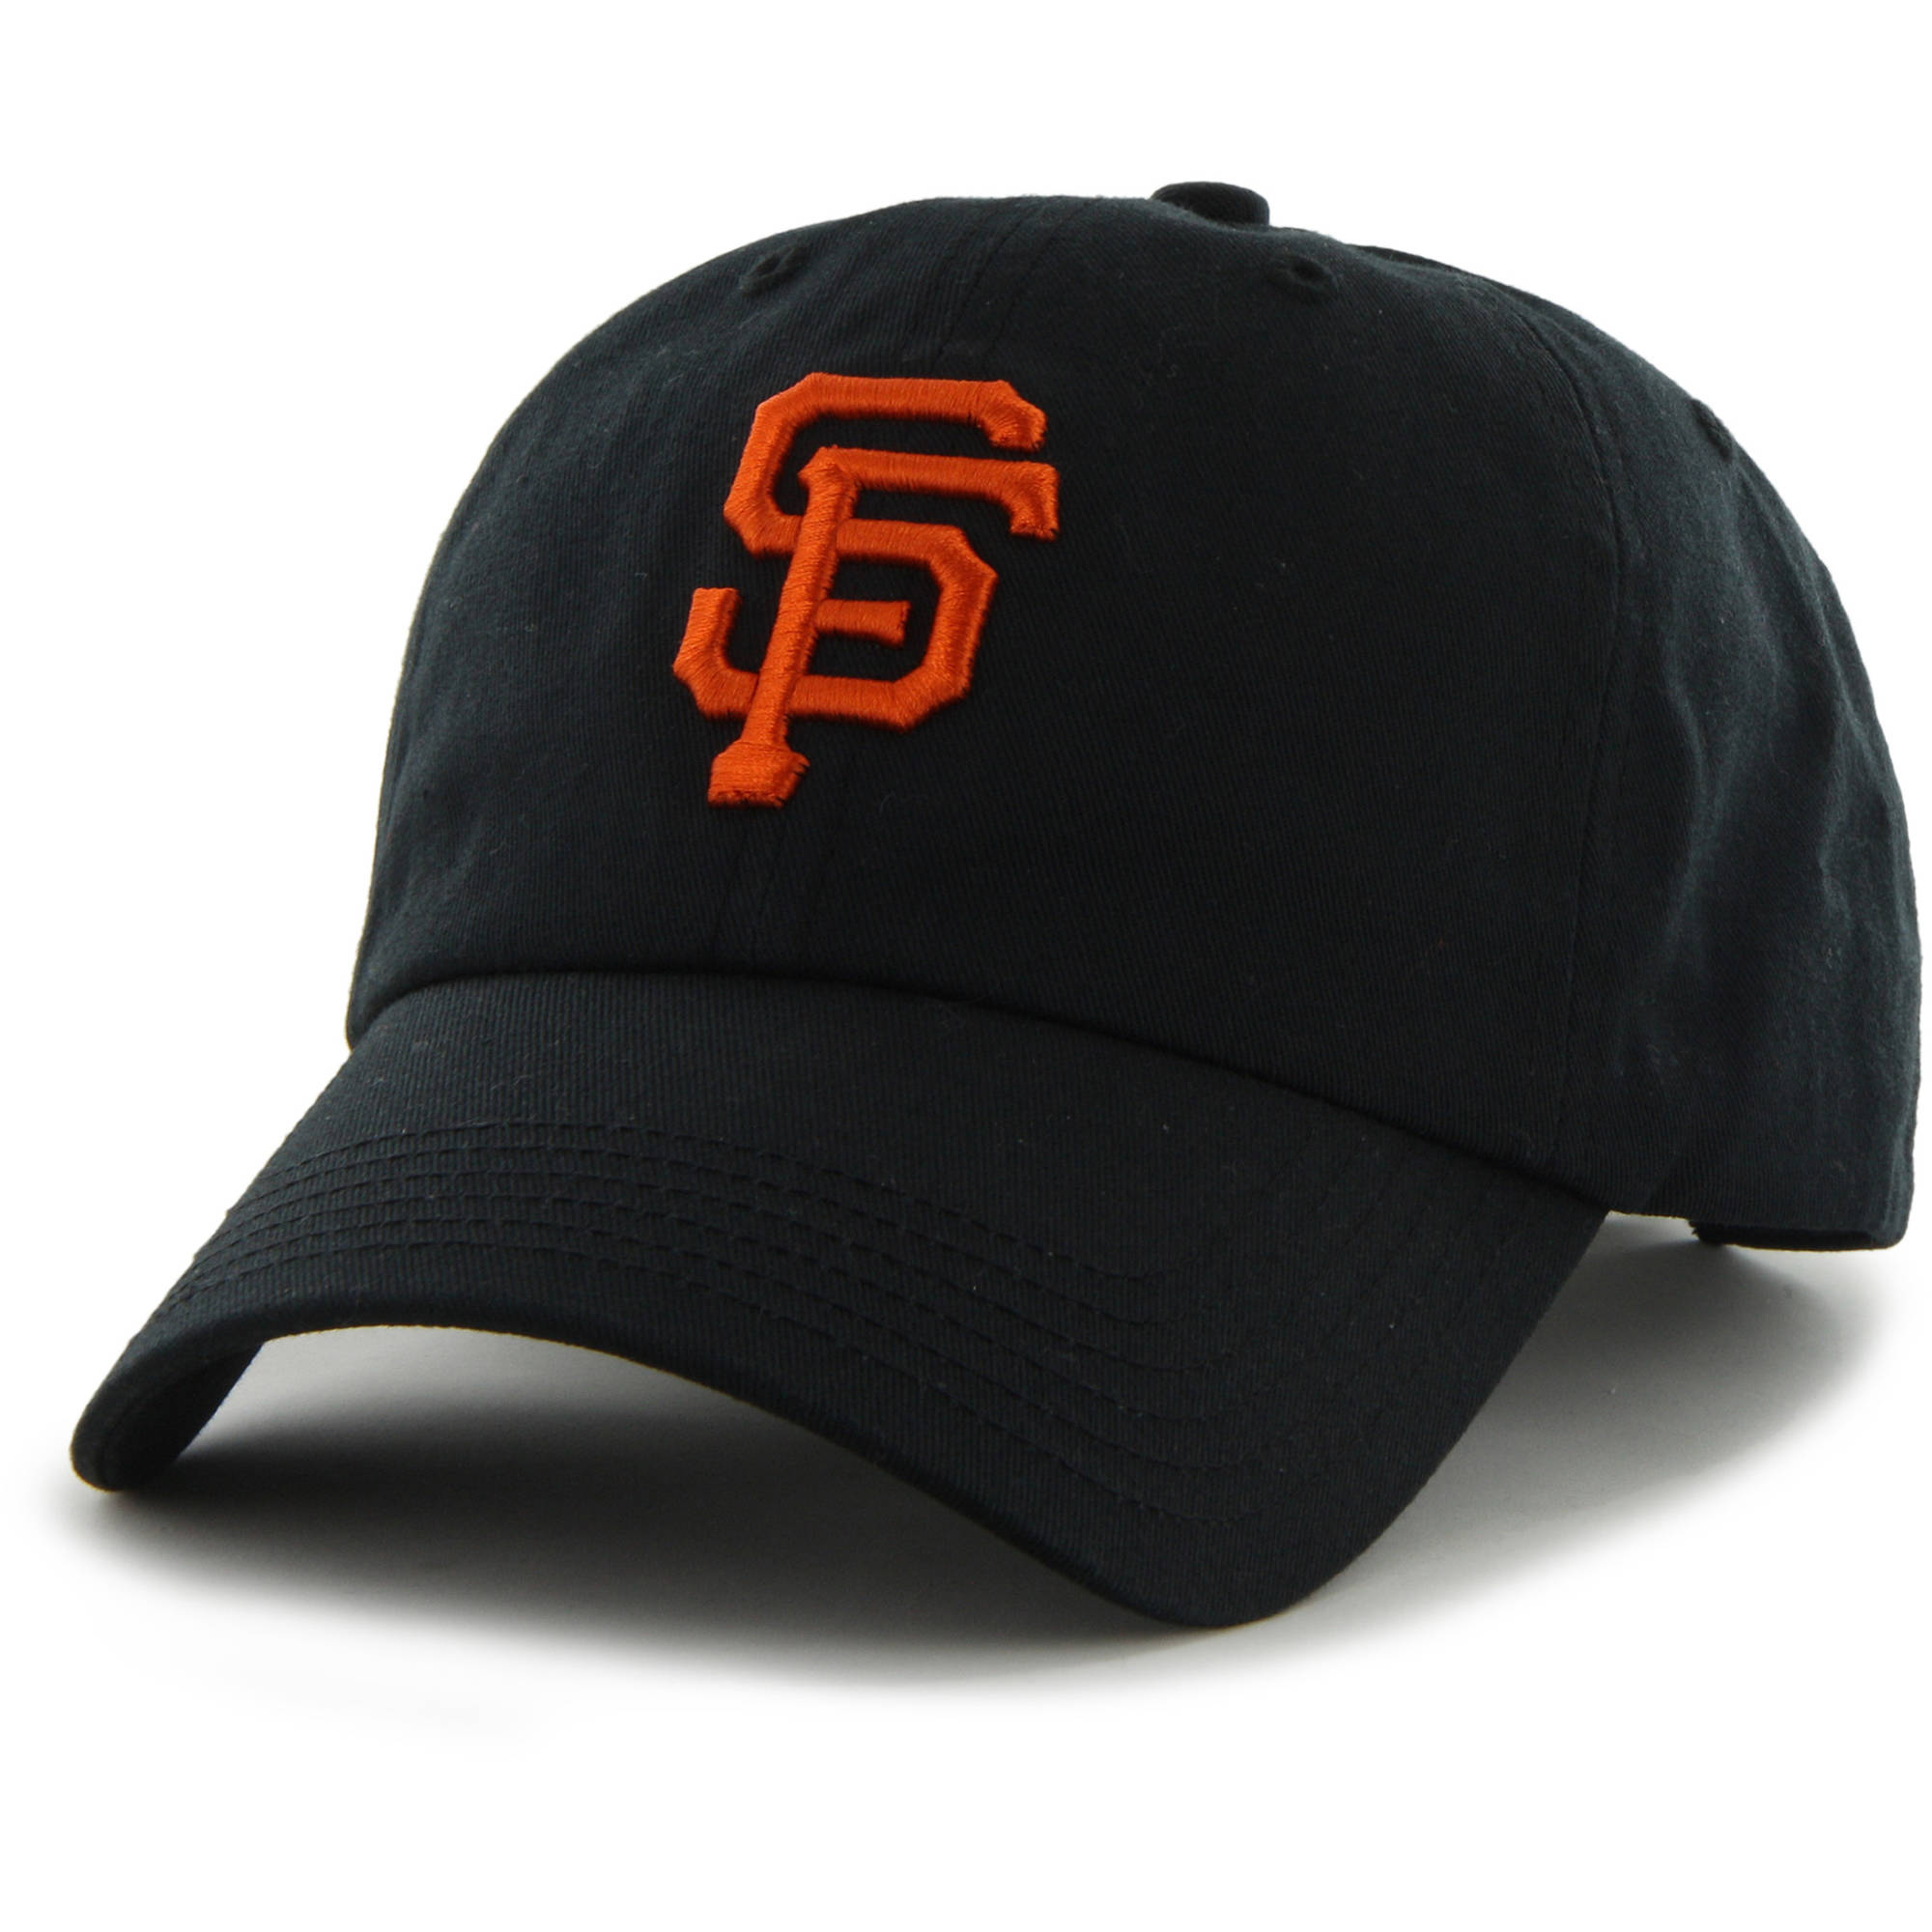 San Francisco Giants '47 Primary Logo Clean Up Adjustable Hat - Black - OSFA